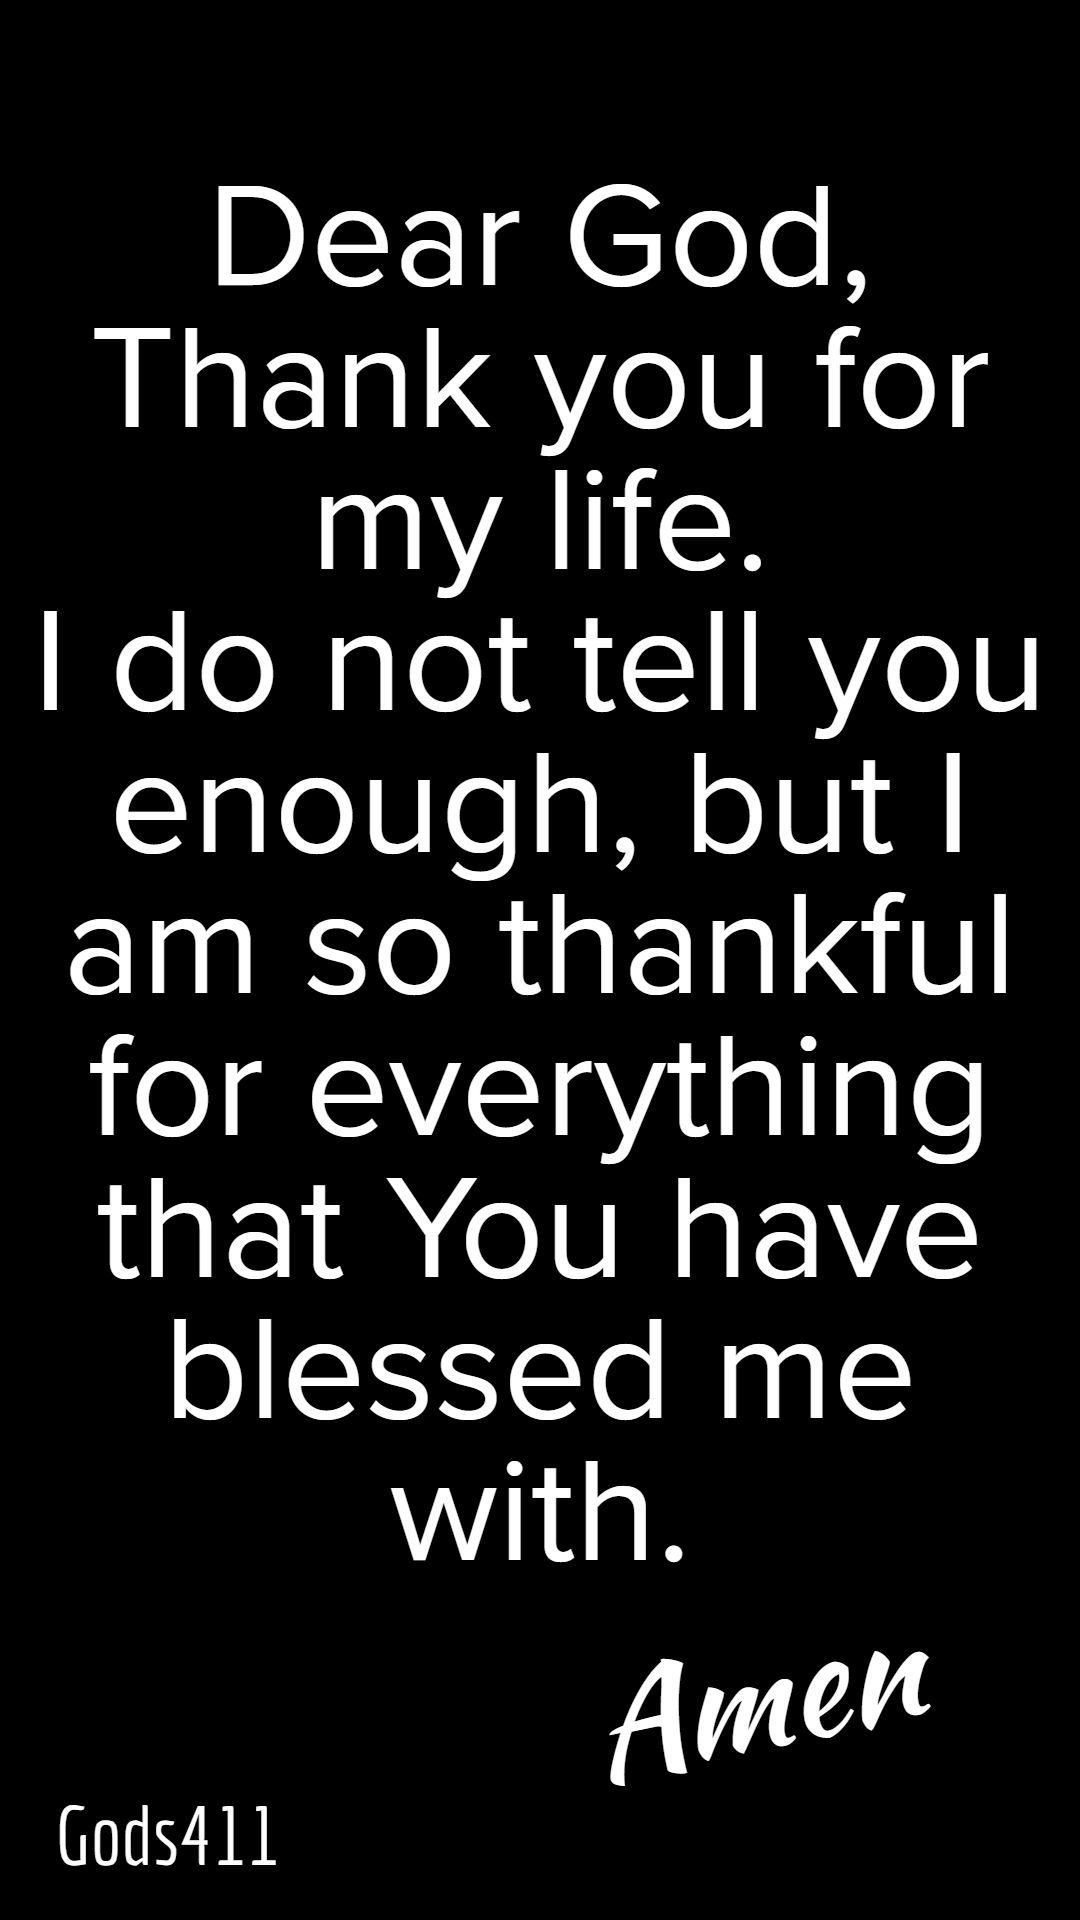 Take A Moment And Thank God For The Little Things In Your Life